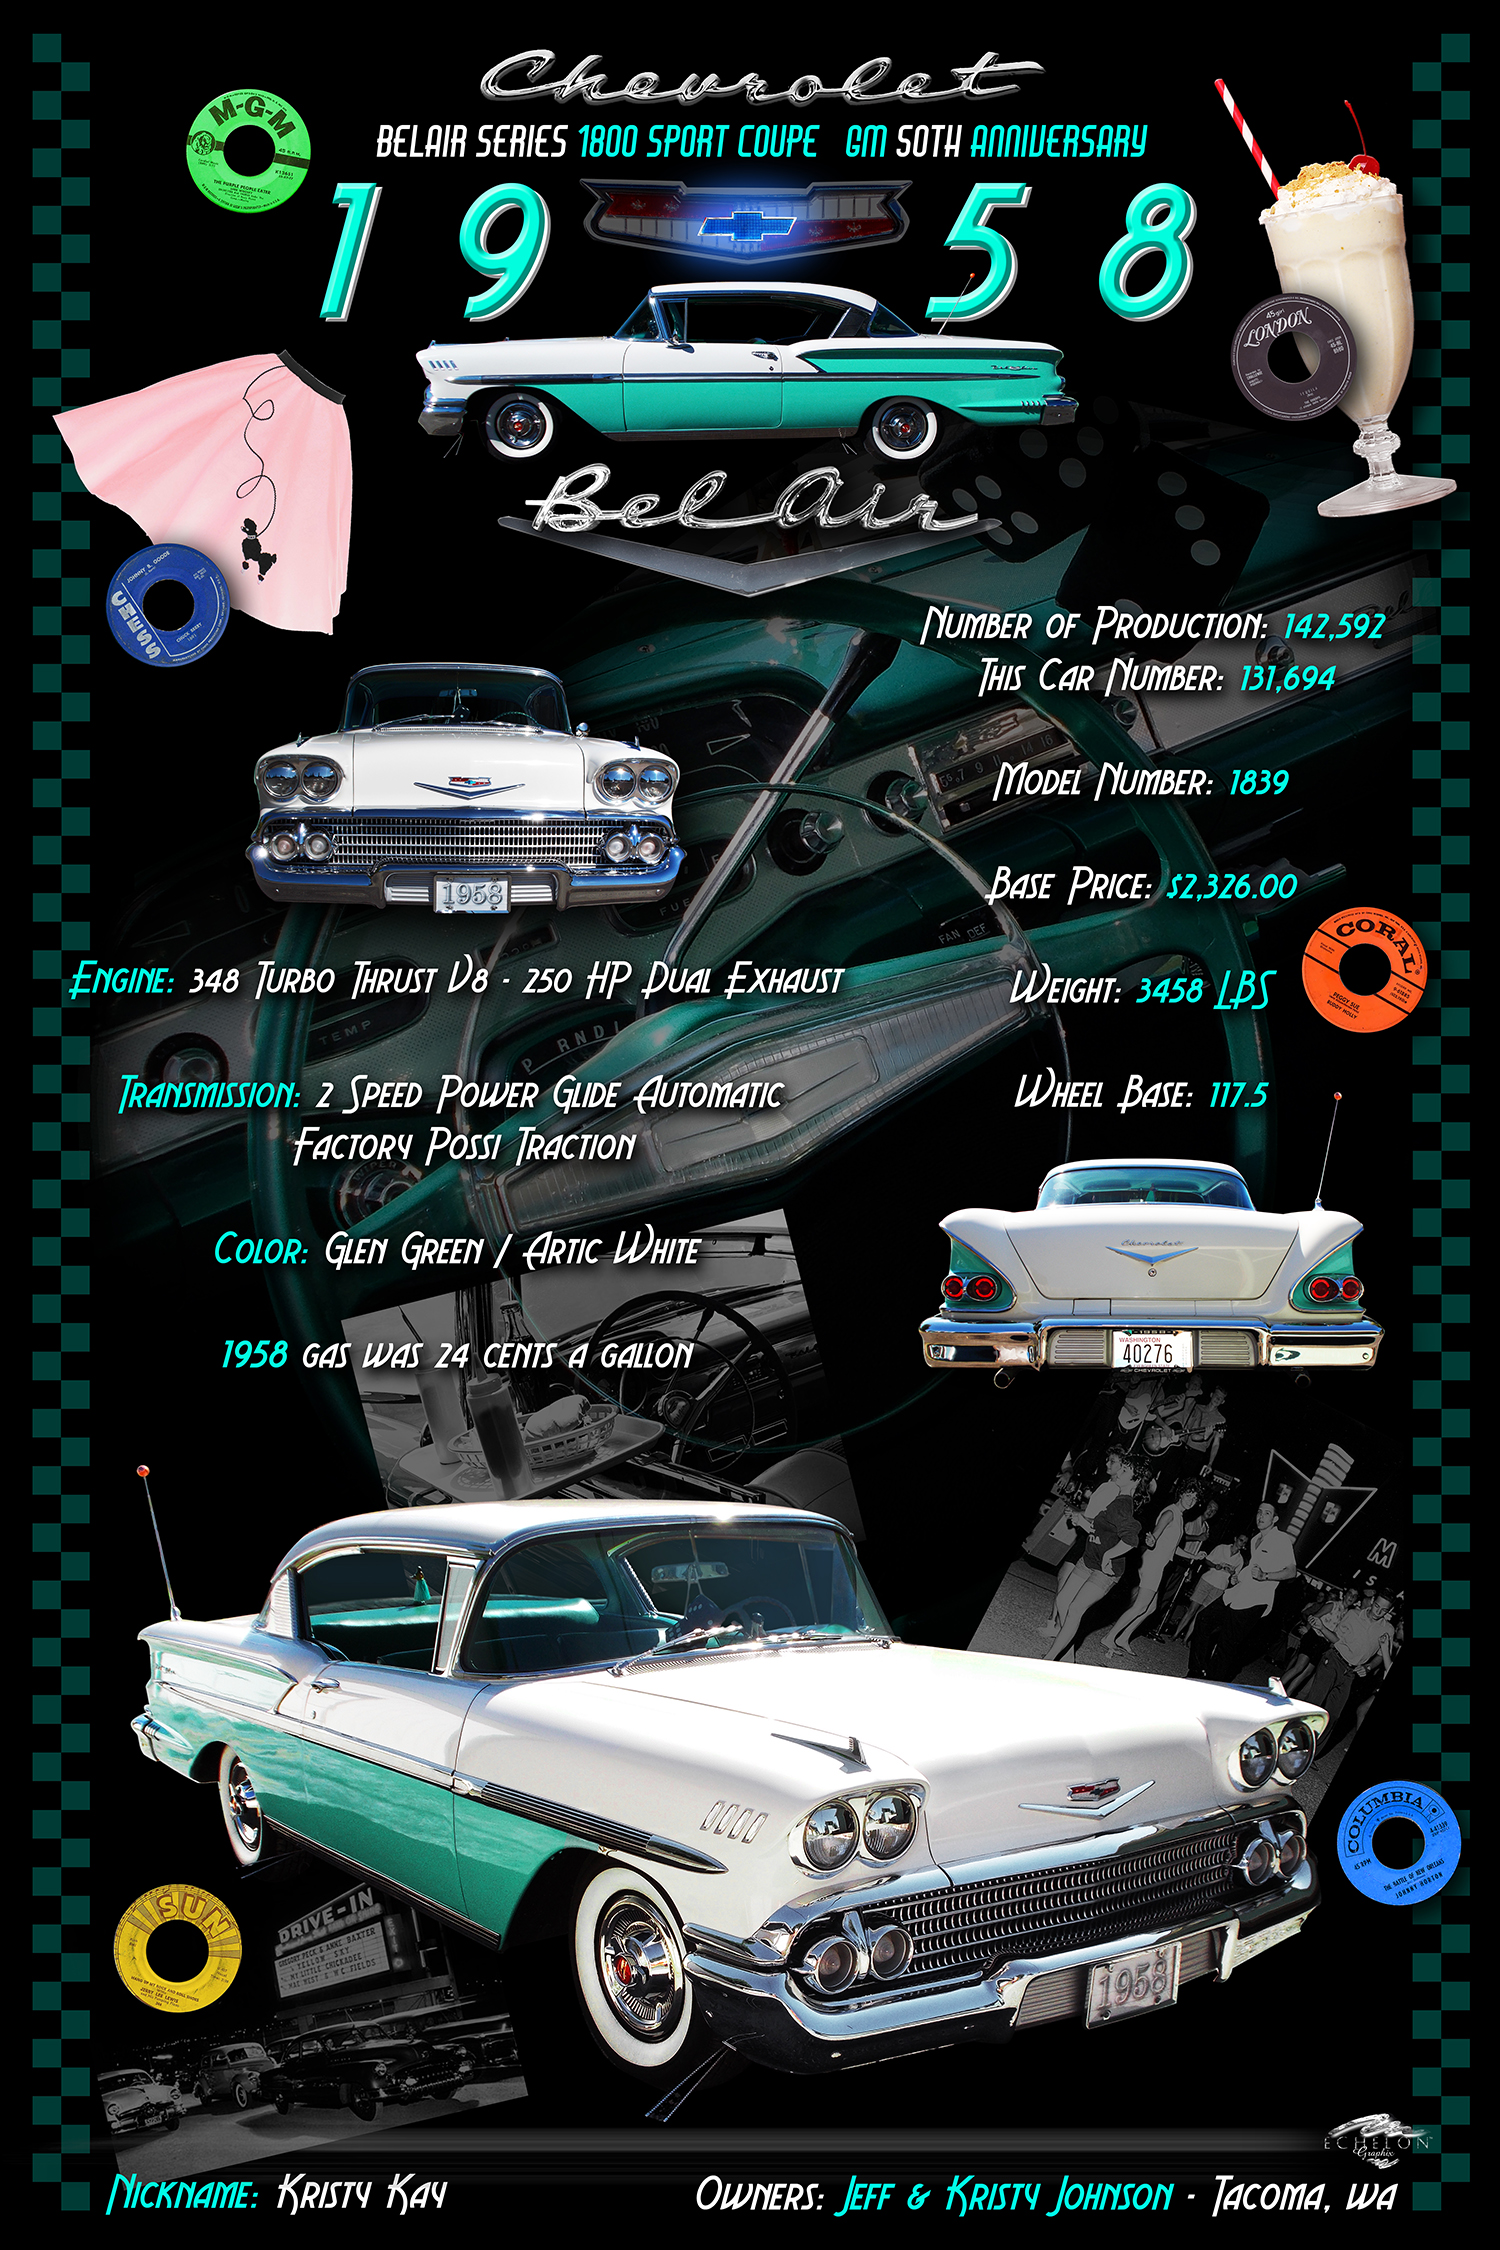 1958 Belair Display Board